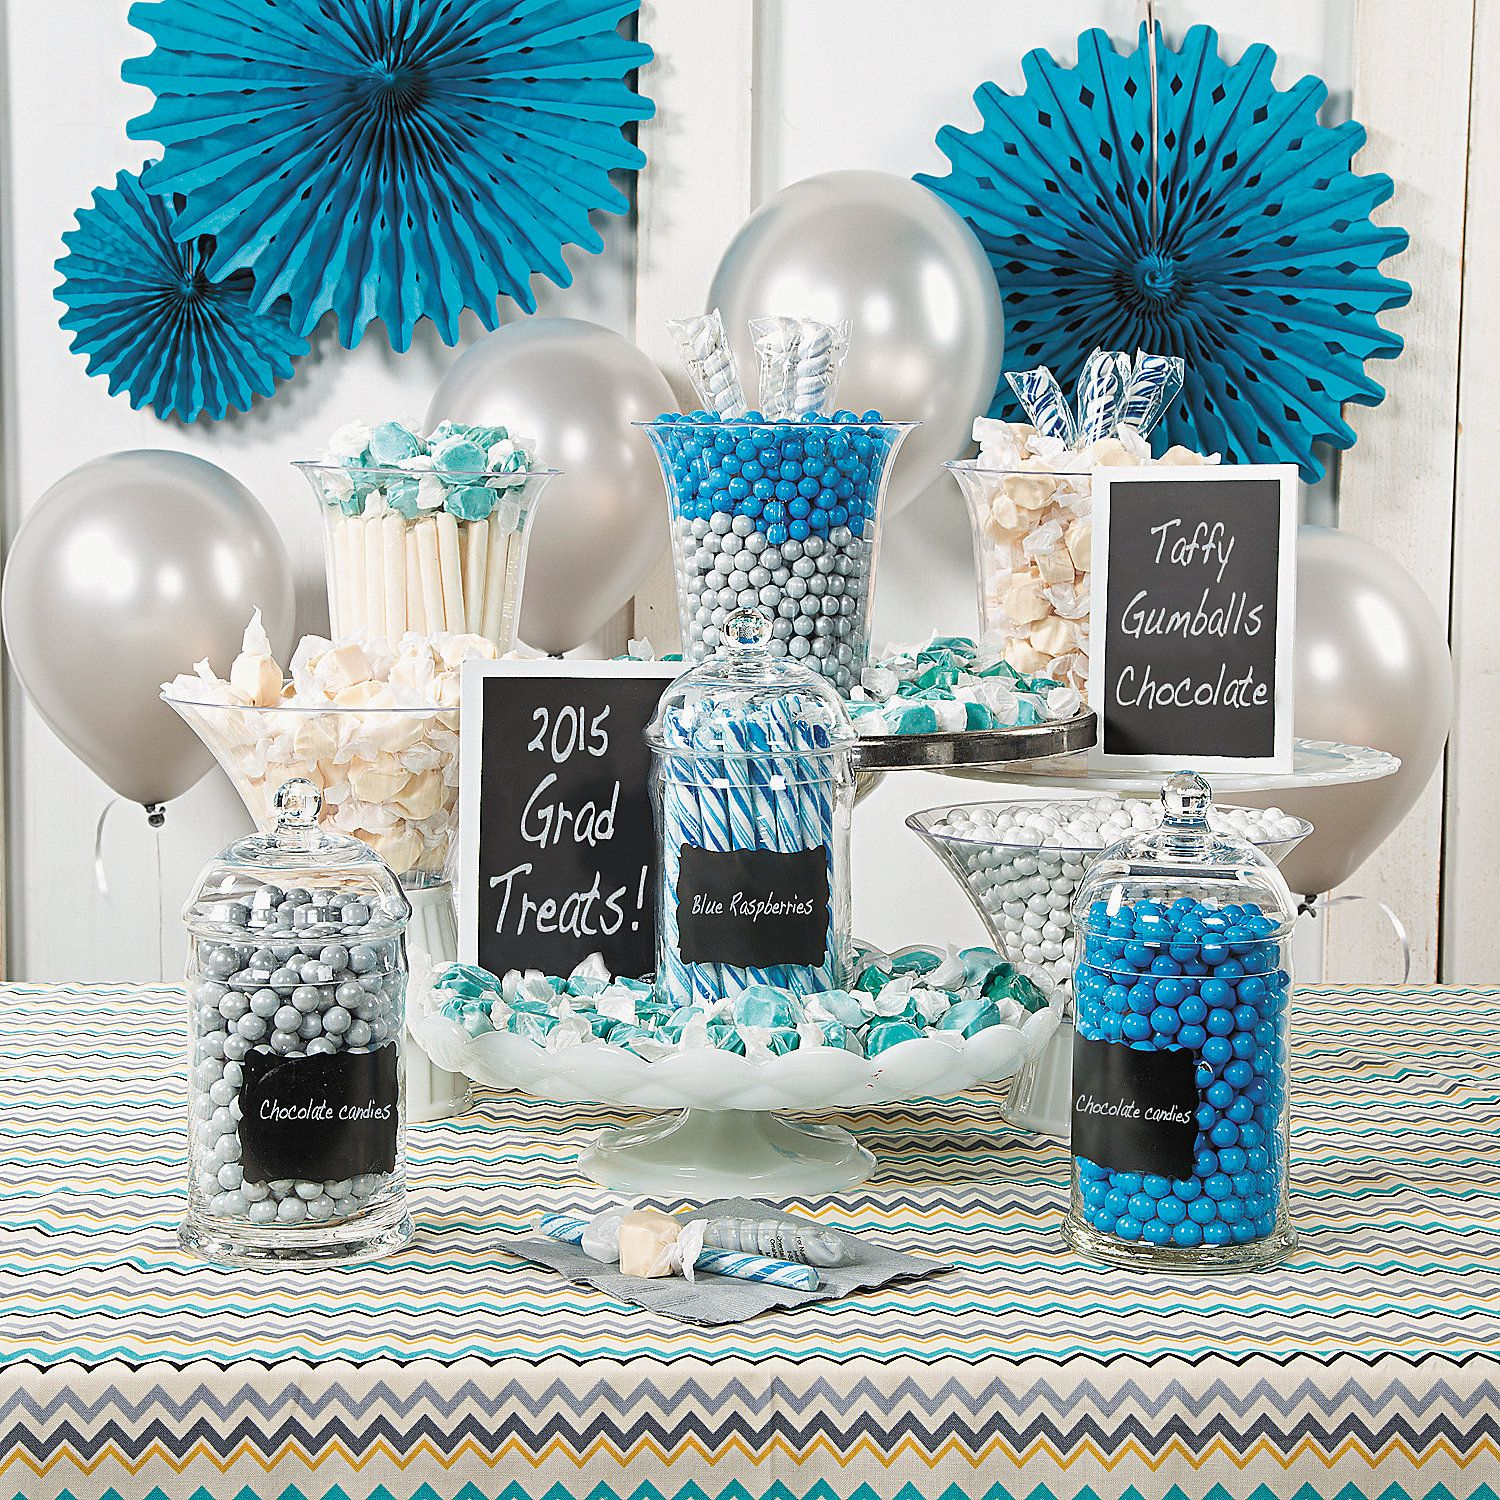 Blue White Graduation Candy Buffet Idea Show Some School Spirit With This Sweet Way To Celebr Graduation Candy Buffet Graduation Candy Graduation Candy Bar